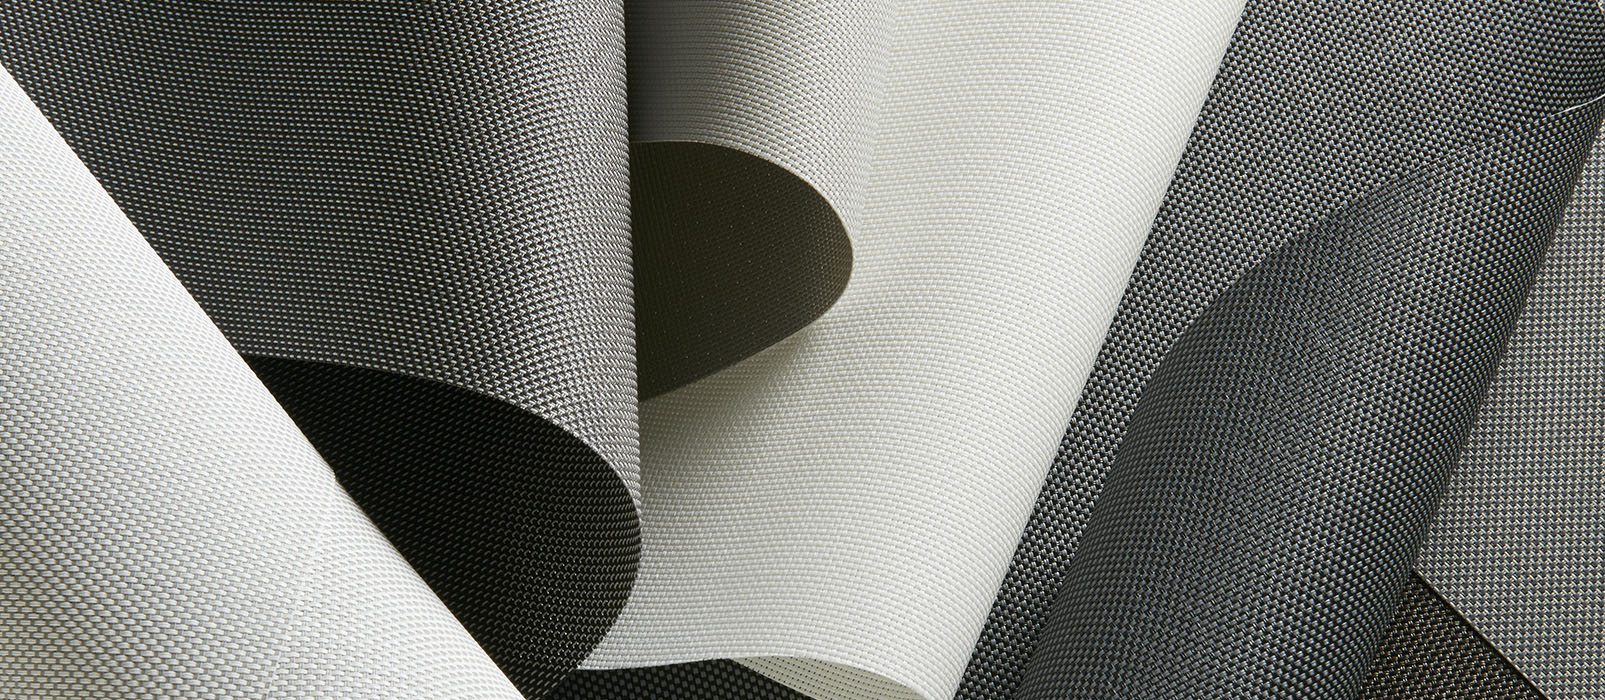 Component - Products - Fabrics - Ecoview Plus Banner